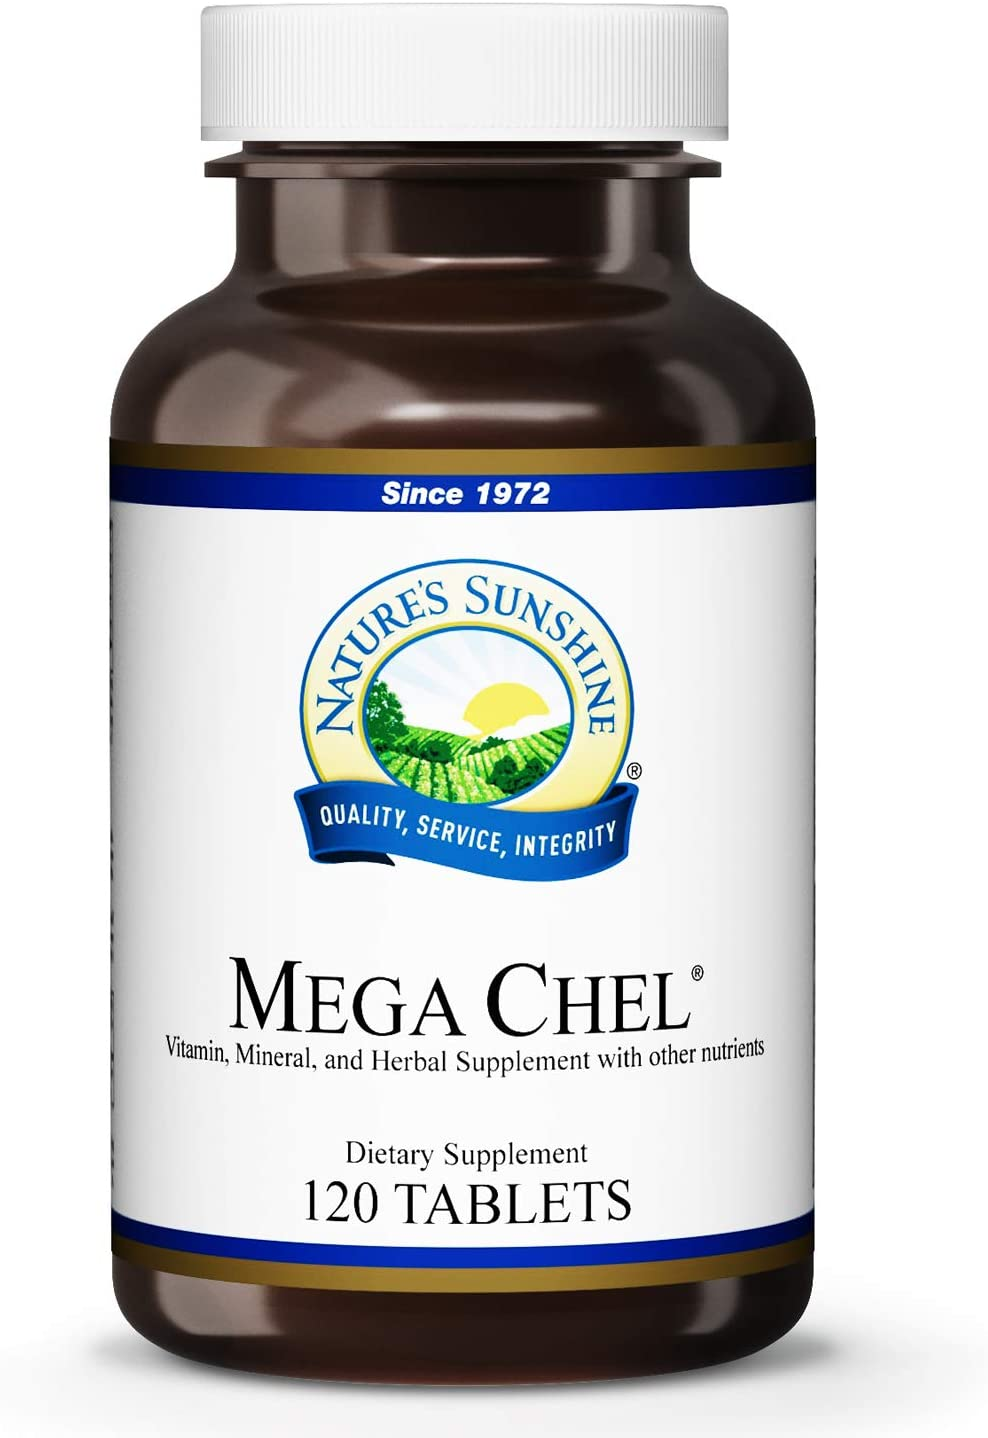 Nature's Sunshine Mega-Chel, 120 Tablets   Complete Vitamin with Powerful Antioxidants, Herbs, Vitamins, Minerals, and Amino Acids That Support The Circulatory System